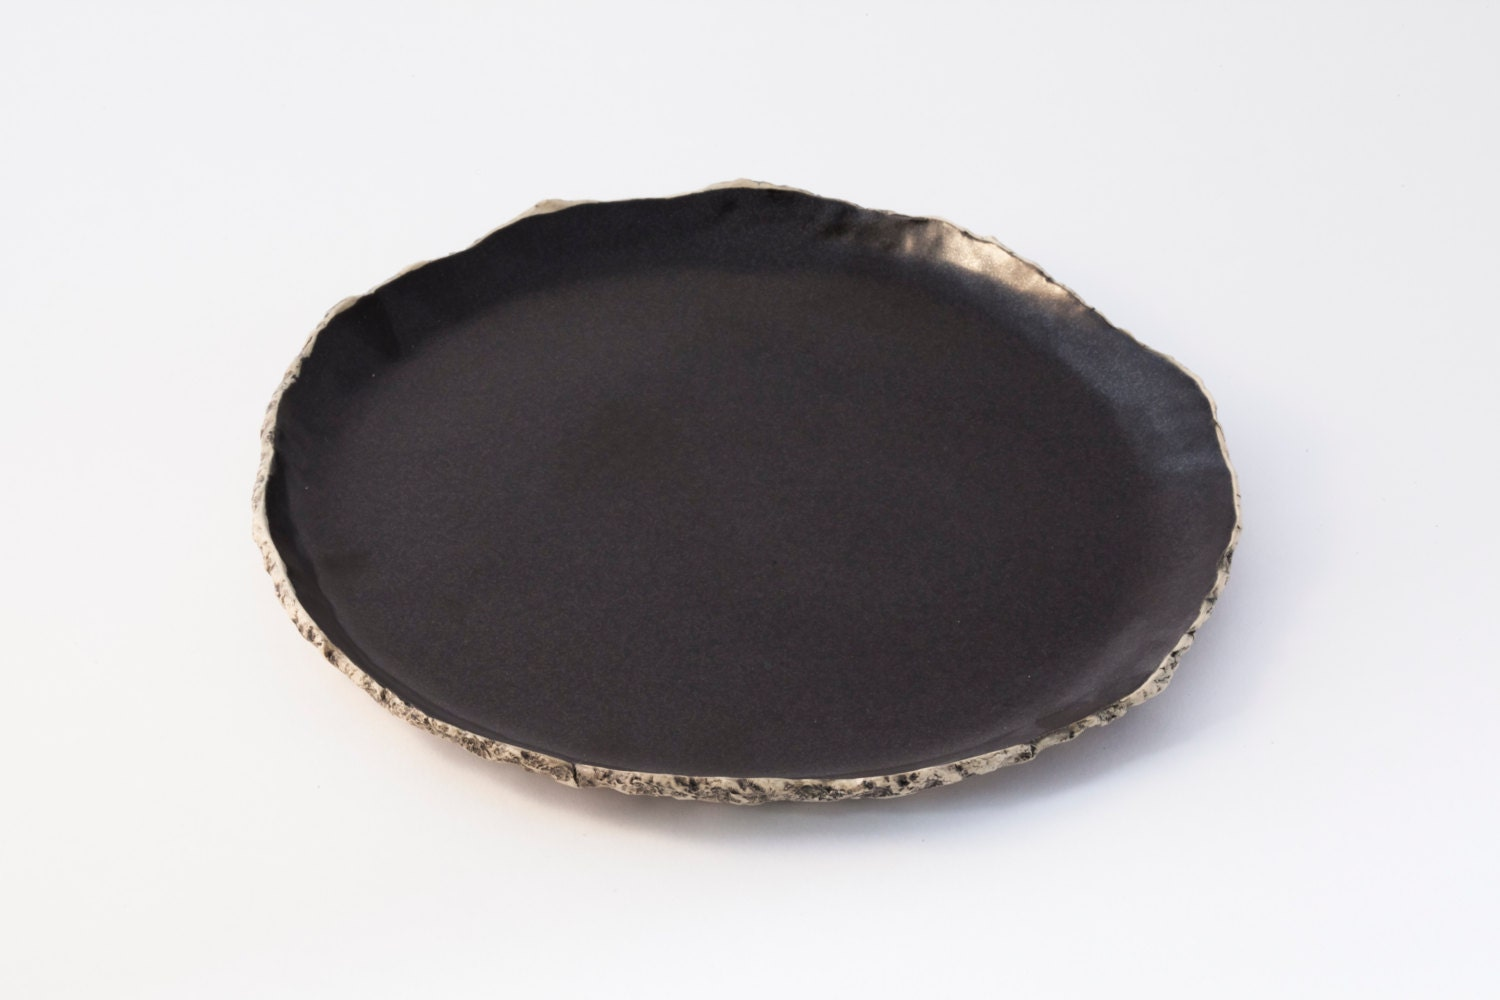 Black Breakfast Plate Ceramic Plate Handmade Dinnerware